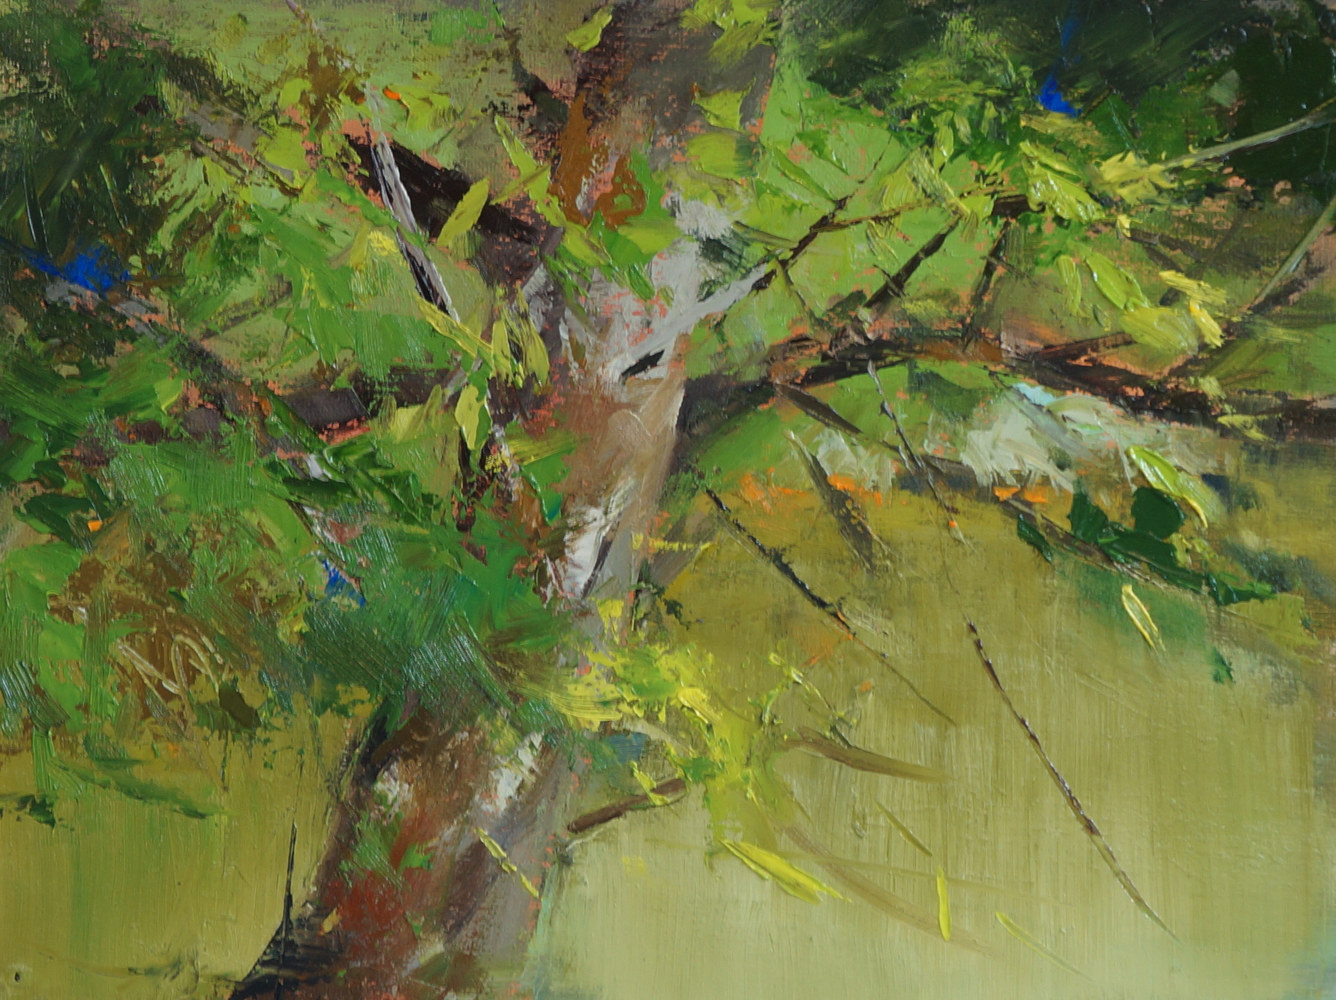 Oil painting The Tree by the River  by Eunice Sim